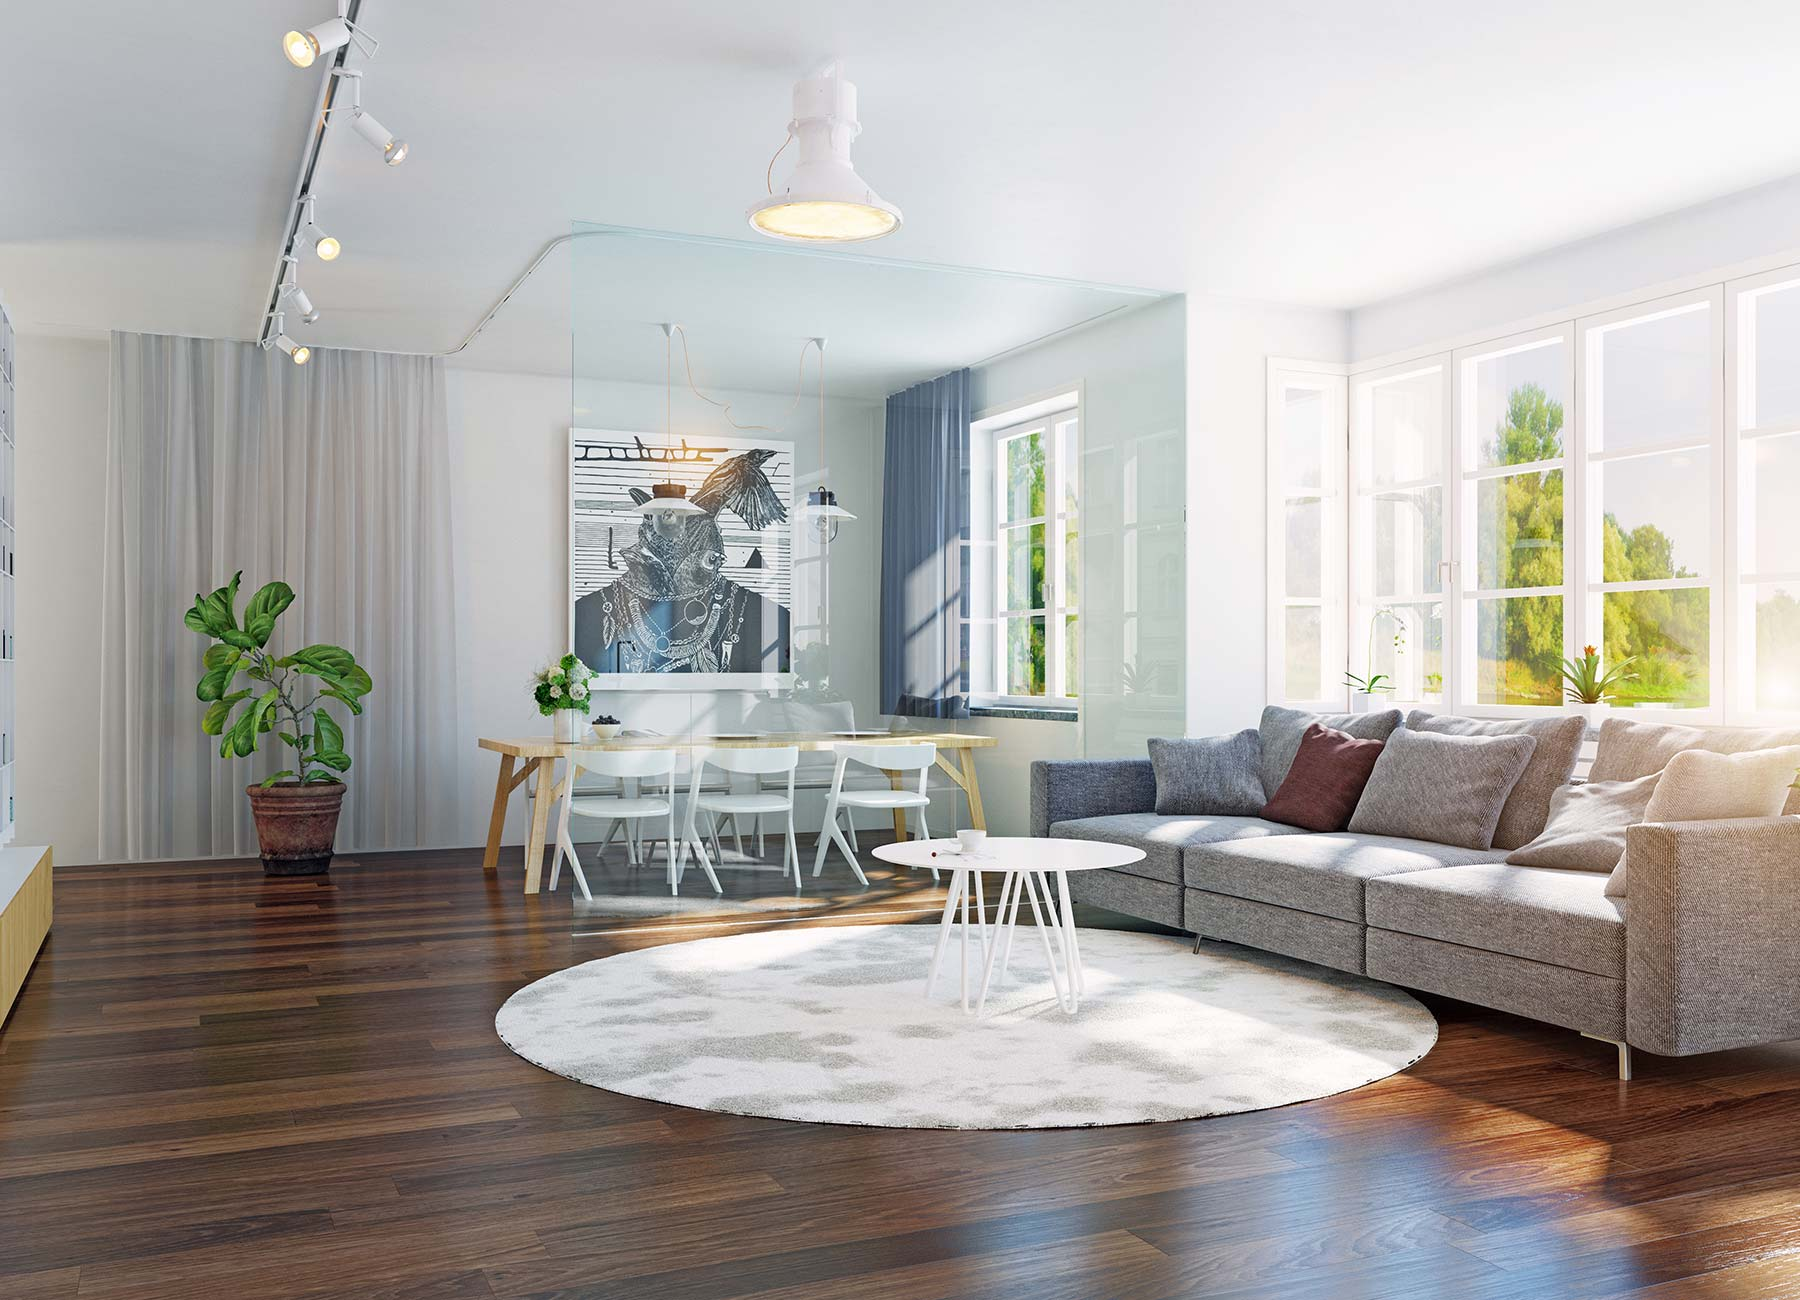 image of home entry with a nice hardwood floor